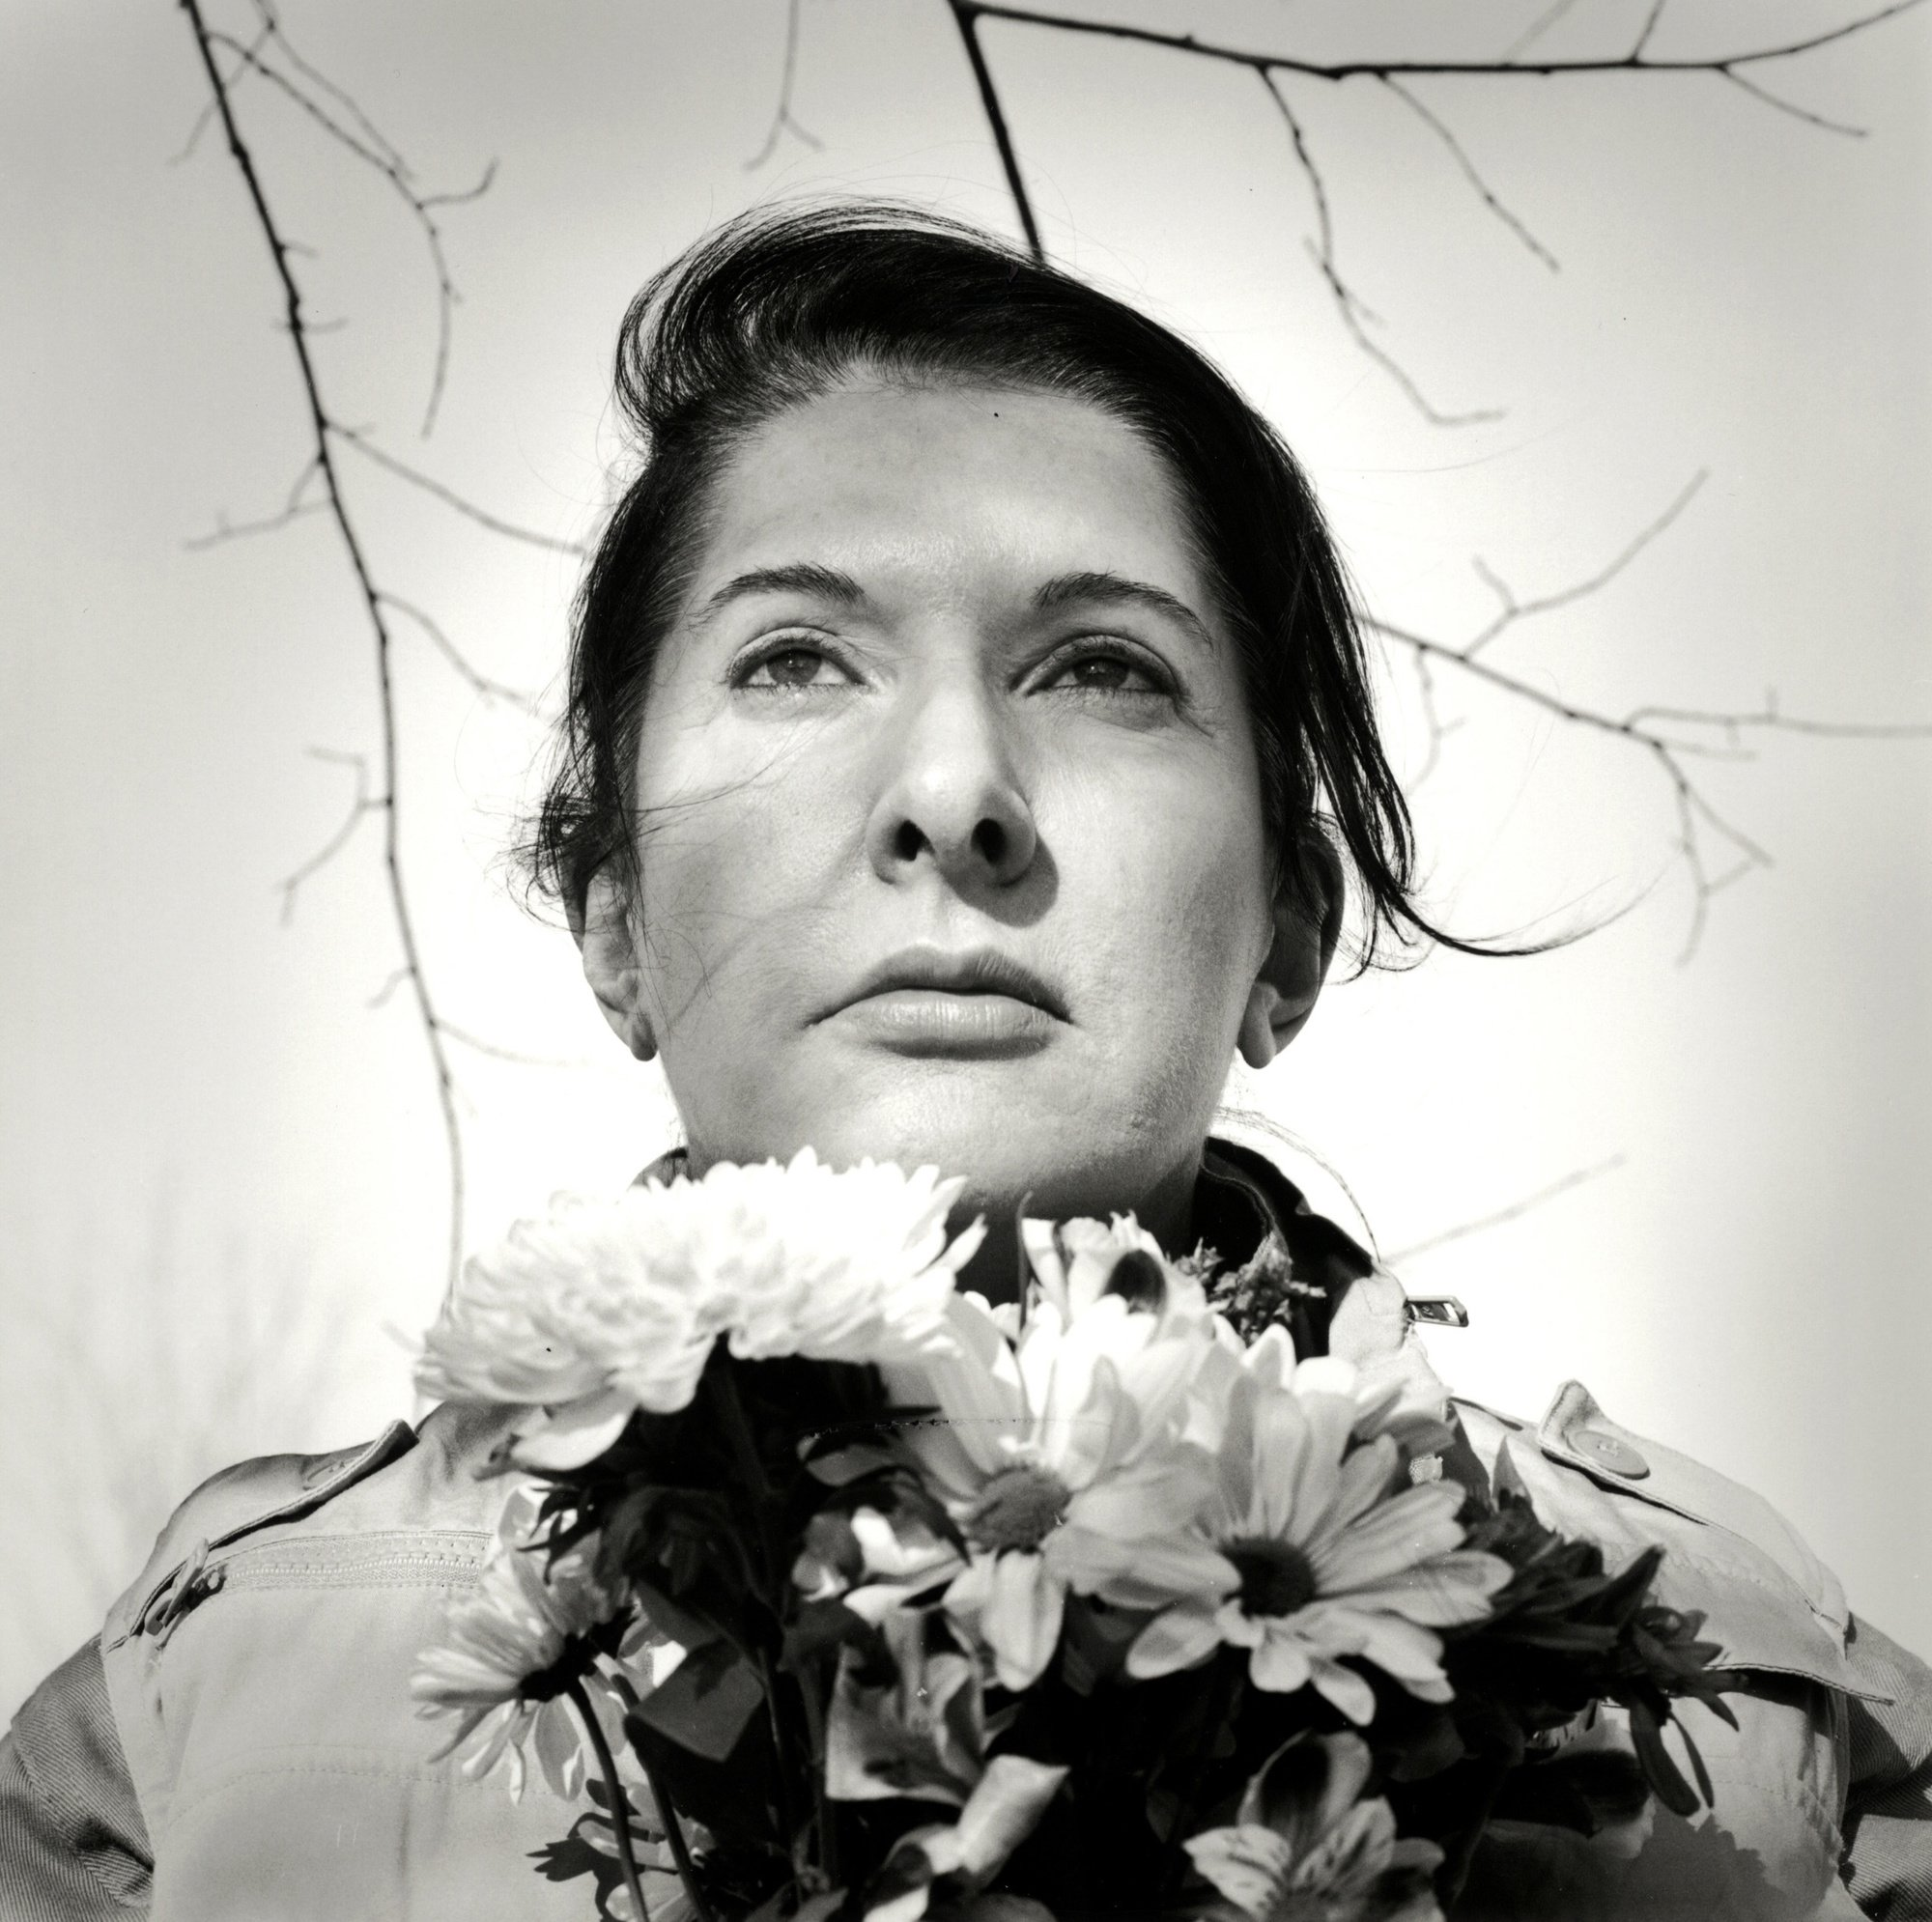 Portrait with Flowers. 2009. © MoMA.